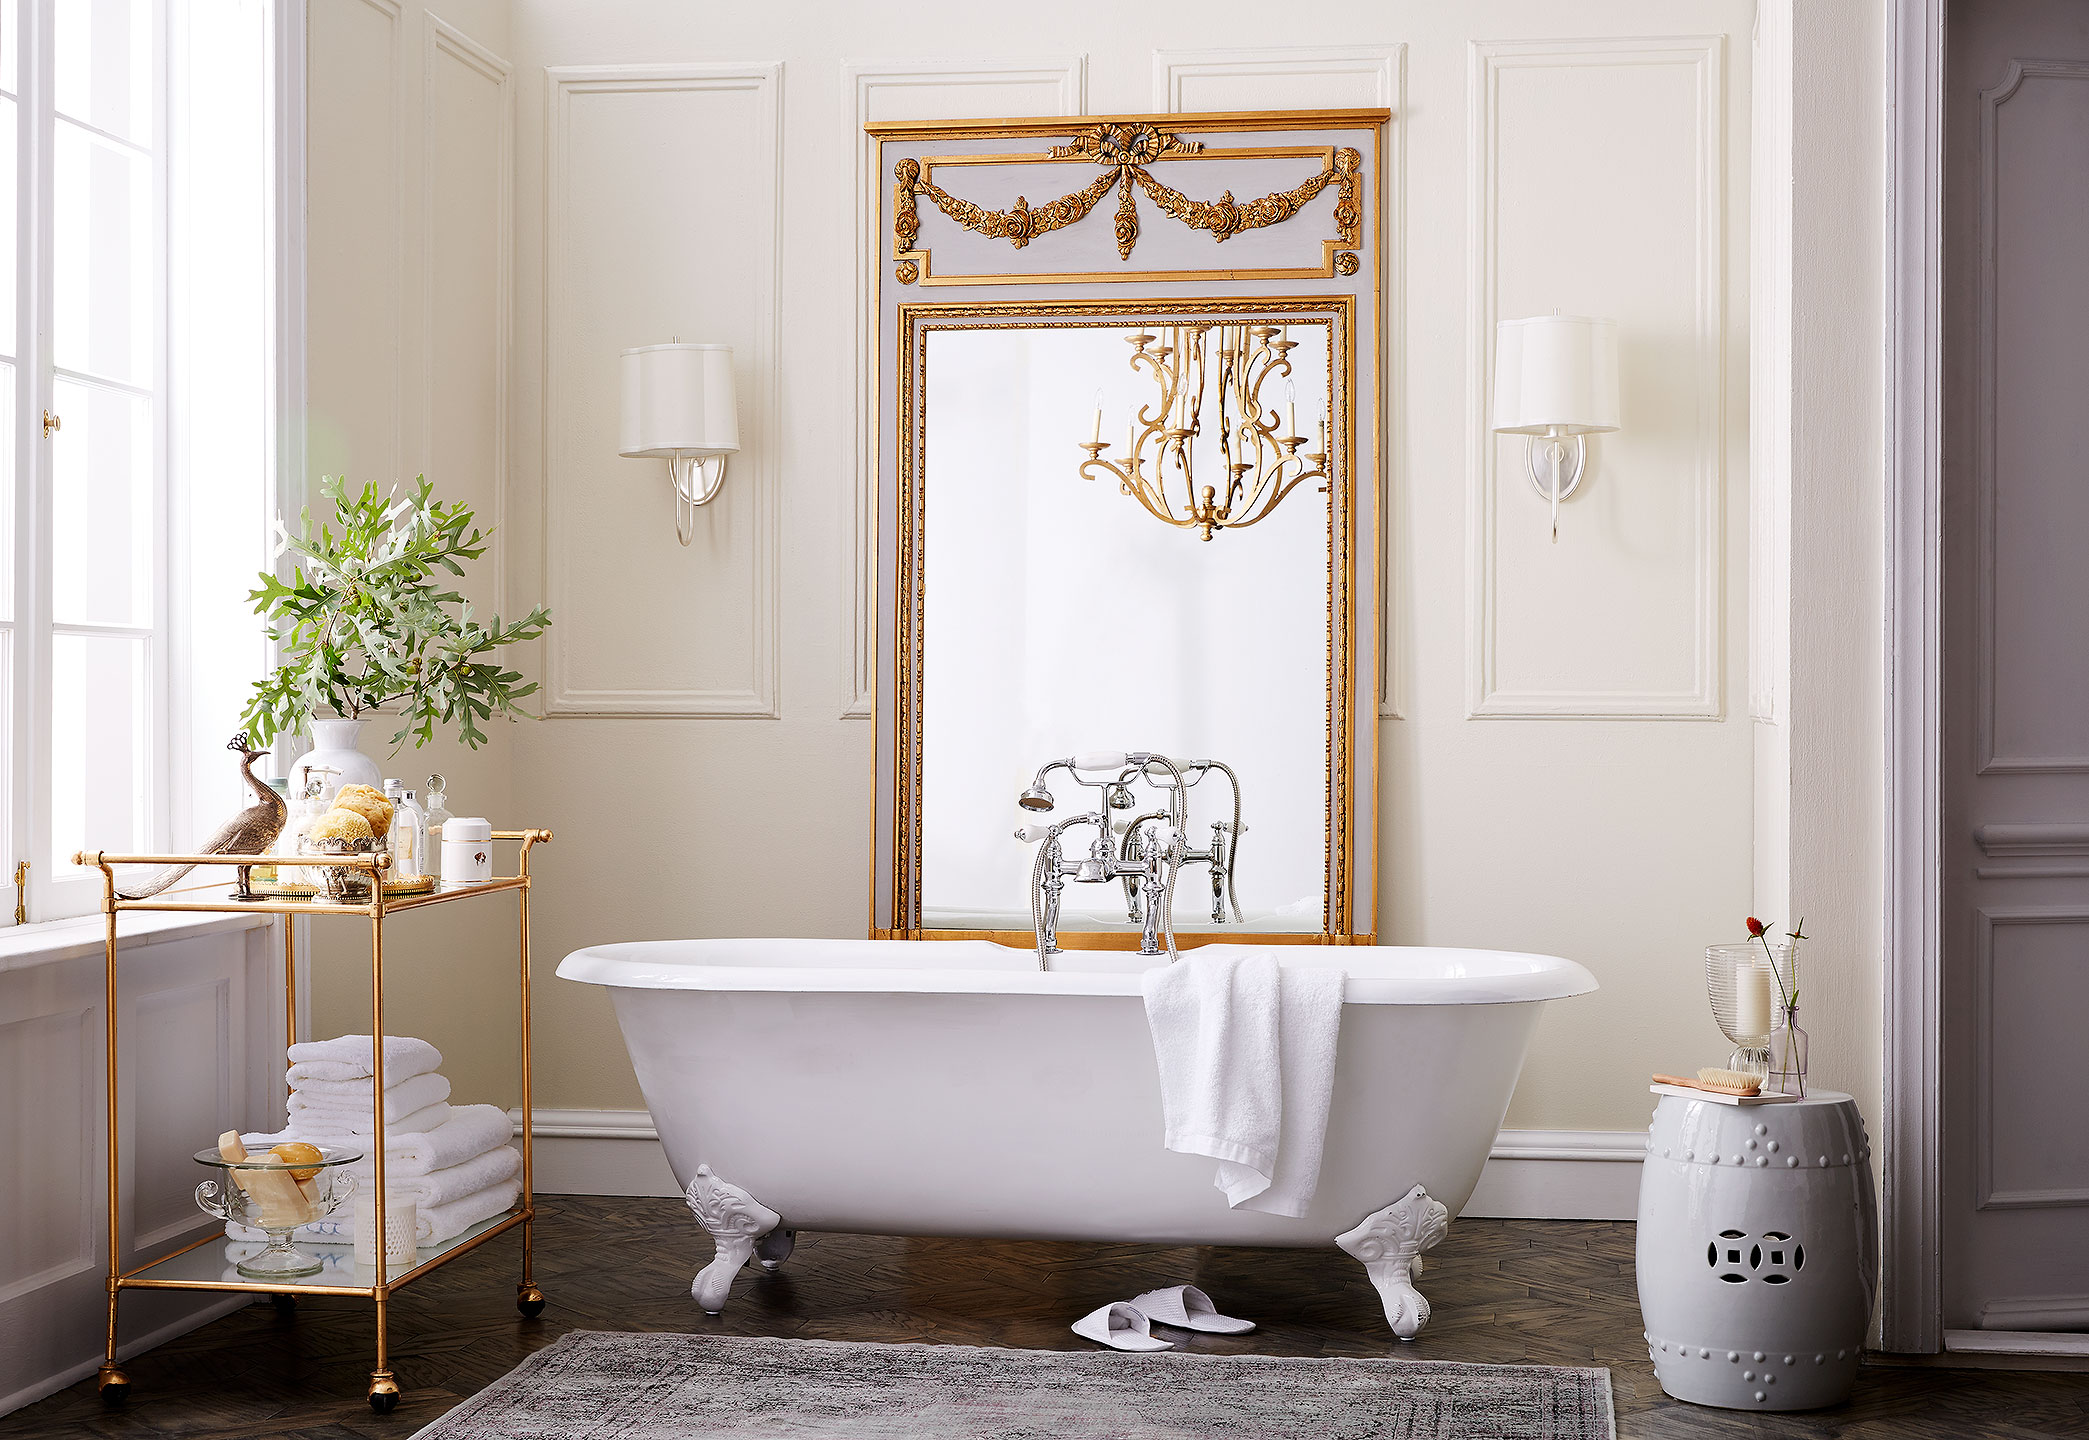 11_OKL_SIT_00074926_LIFE_CR_Spotlight-on-Oversized-Mirrors-392_YHK